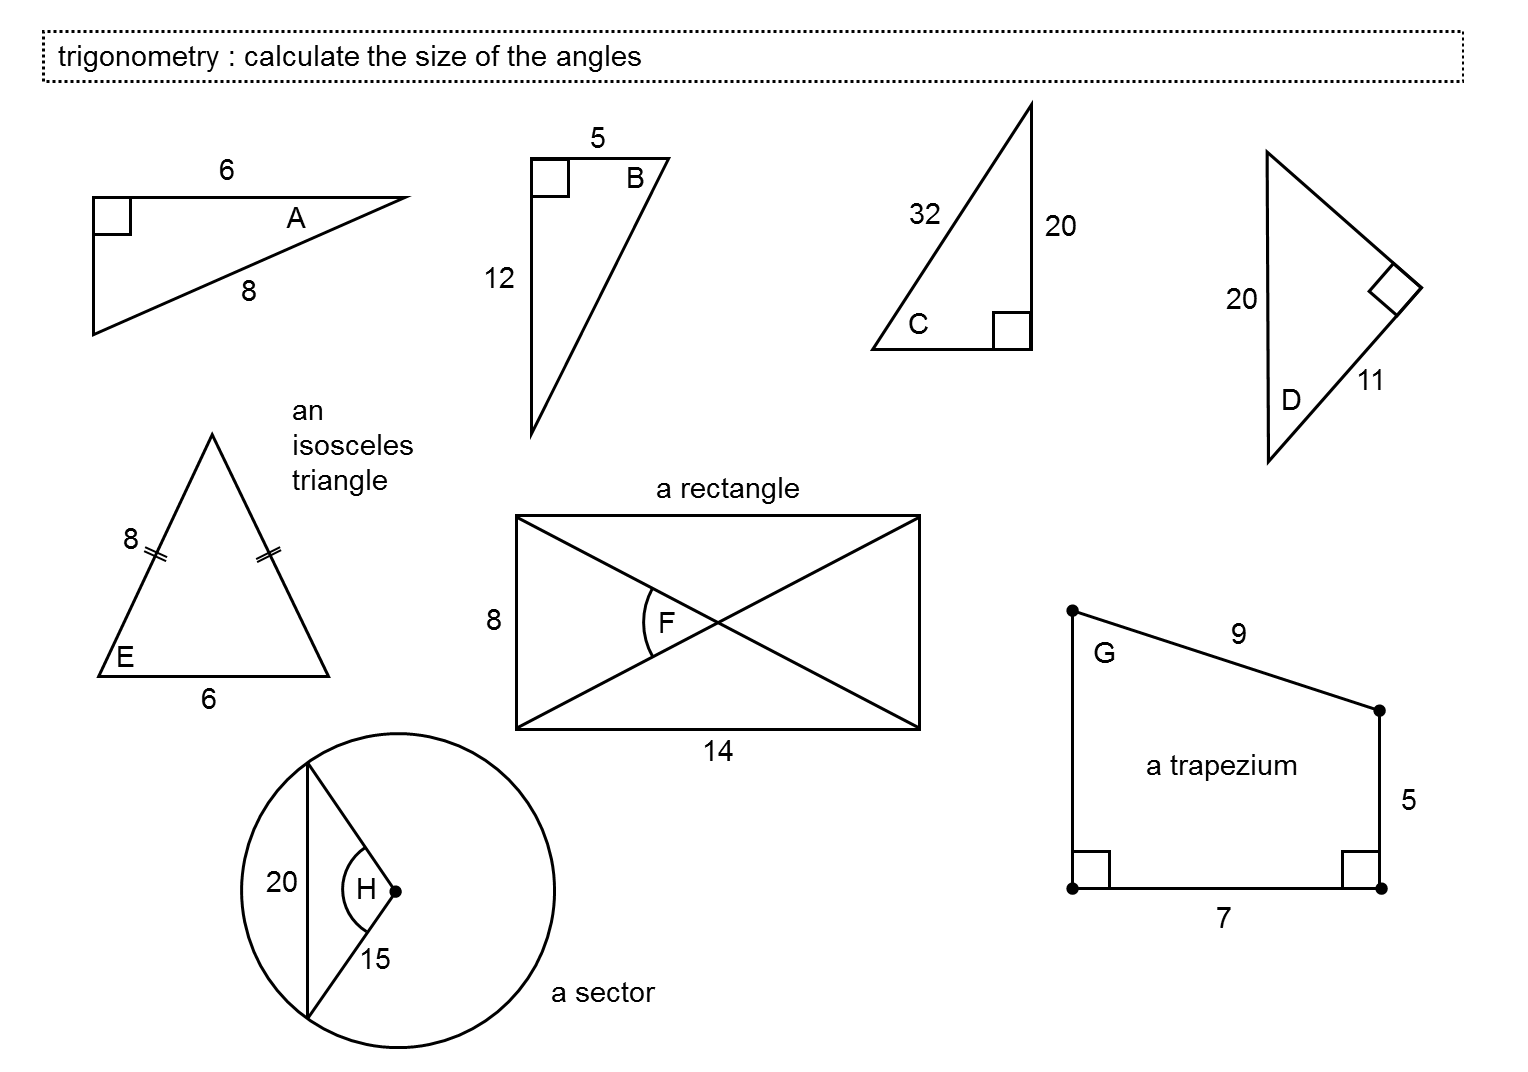 Printables Trigonometry Practice Worksheets trigonometry in right angled triangles miss norledges storeroom calculate angle size don steward